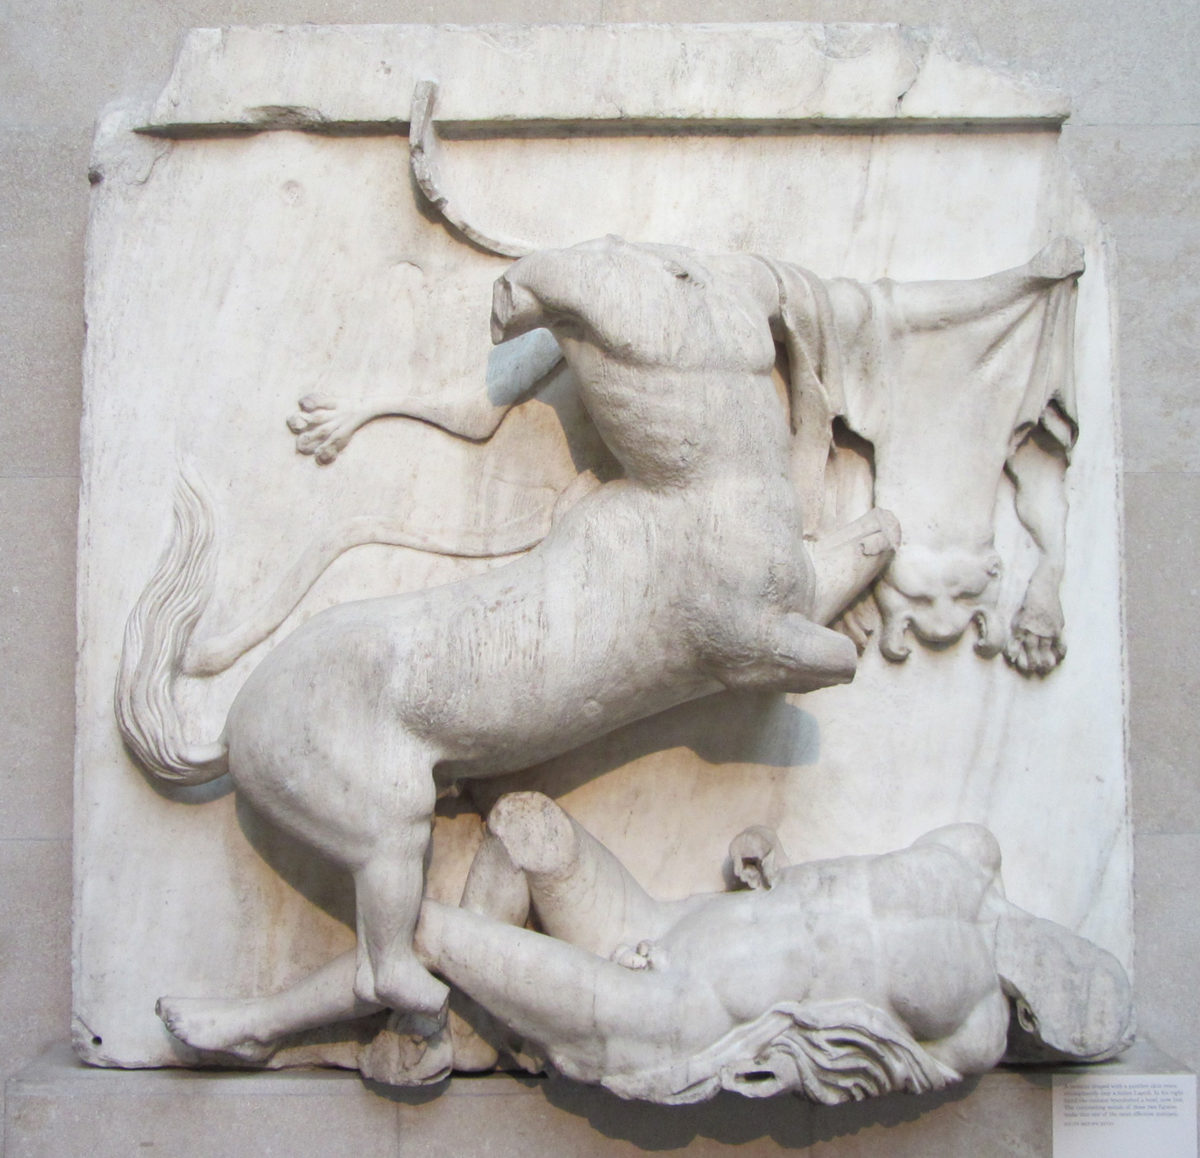 Panel from the Parthenon sculpture showing the battle between a centaur and and a Lapith. Metope XXVIII south. The Acropolis, Athens, Greece, around 440 BC. British Museum